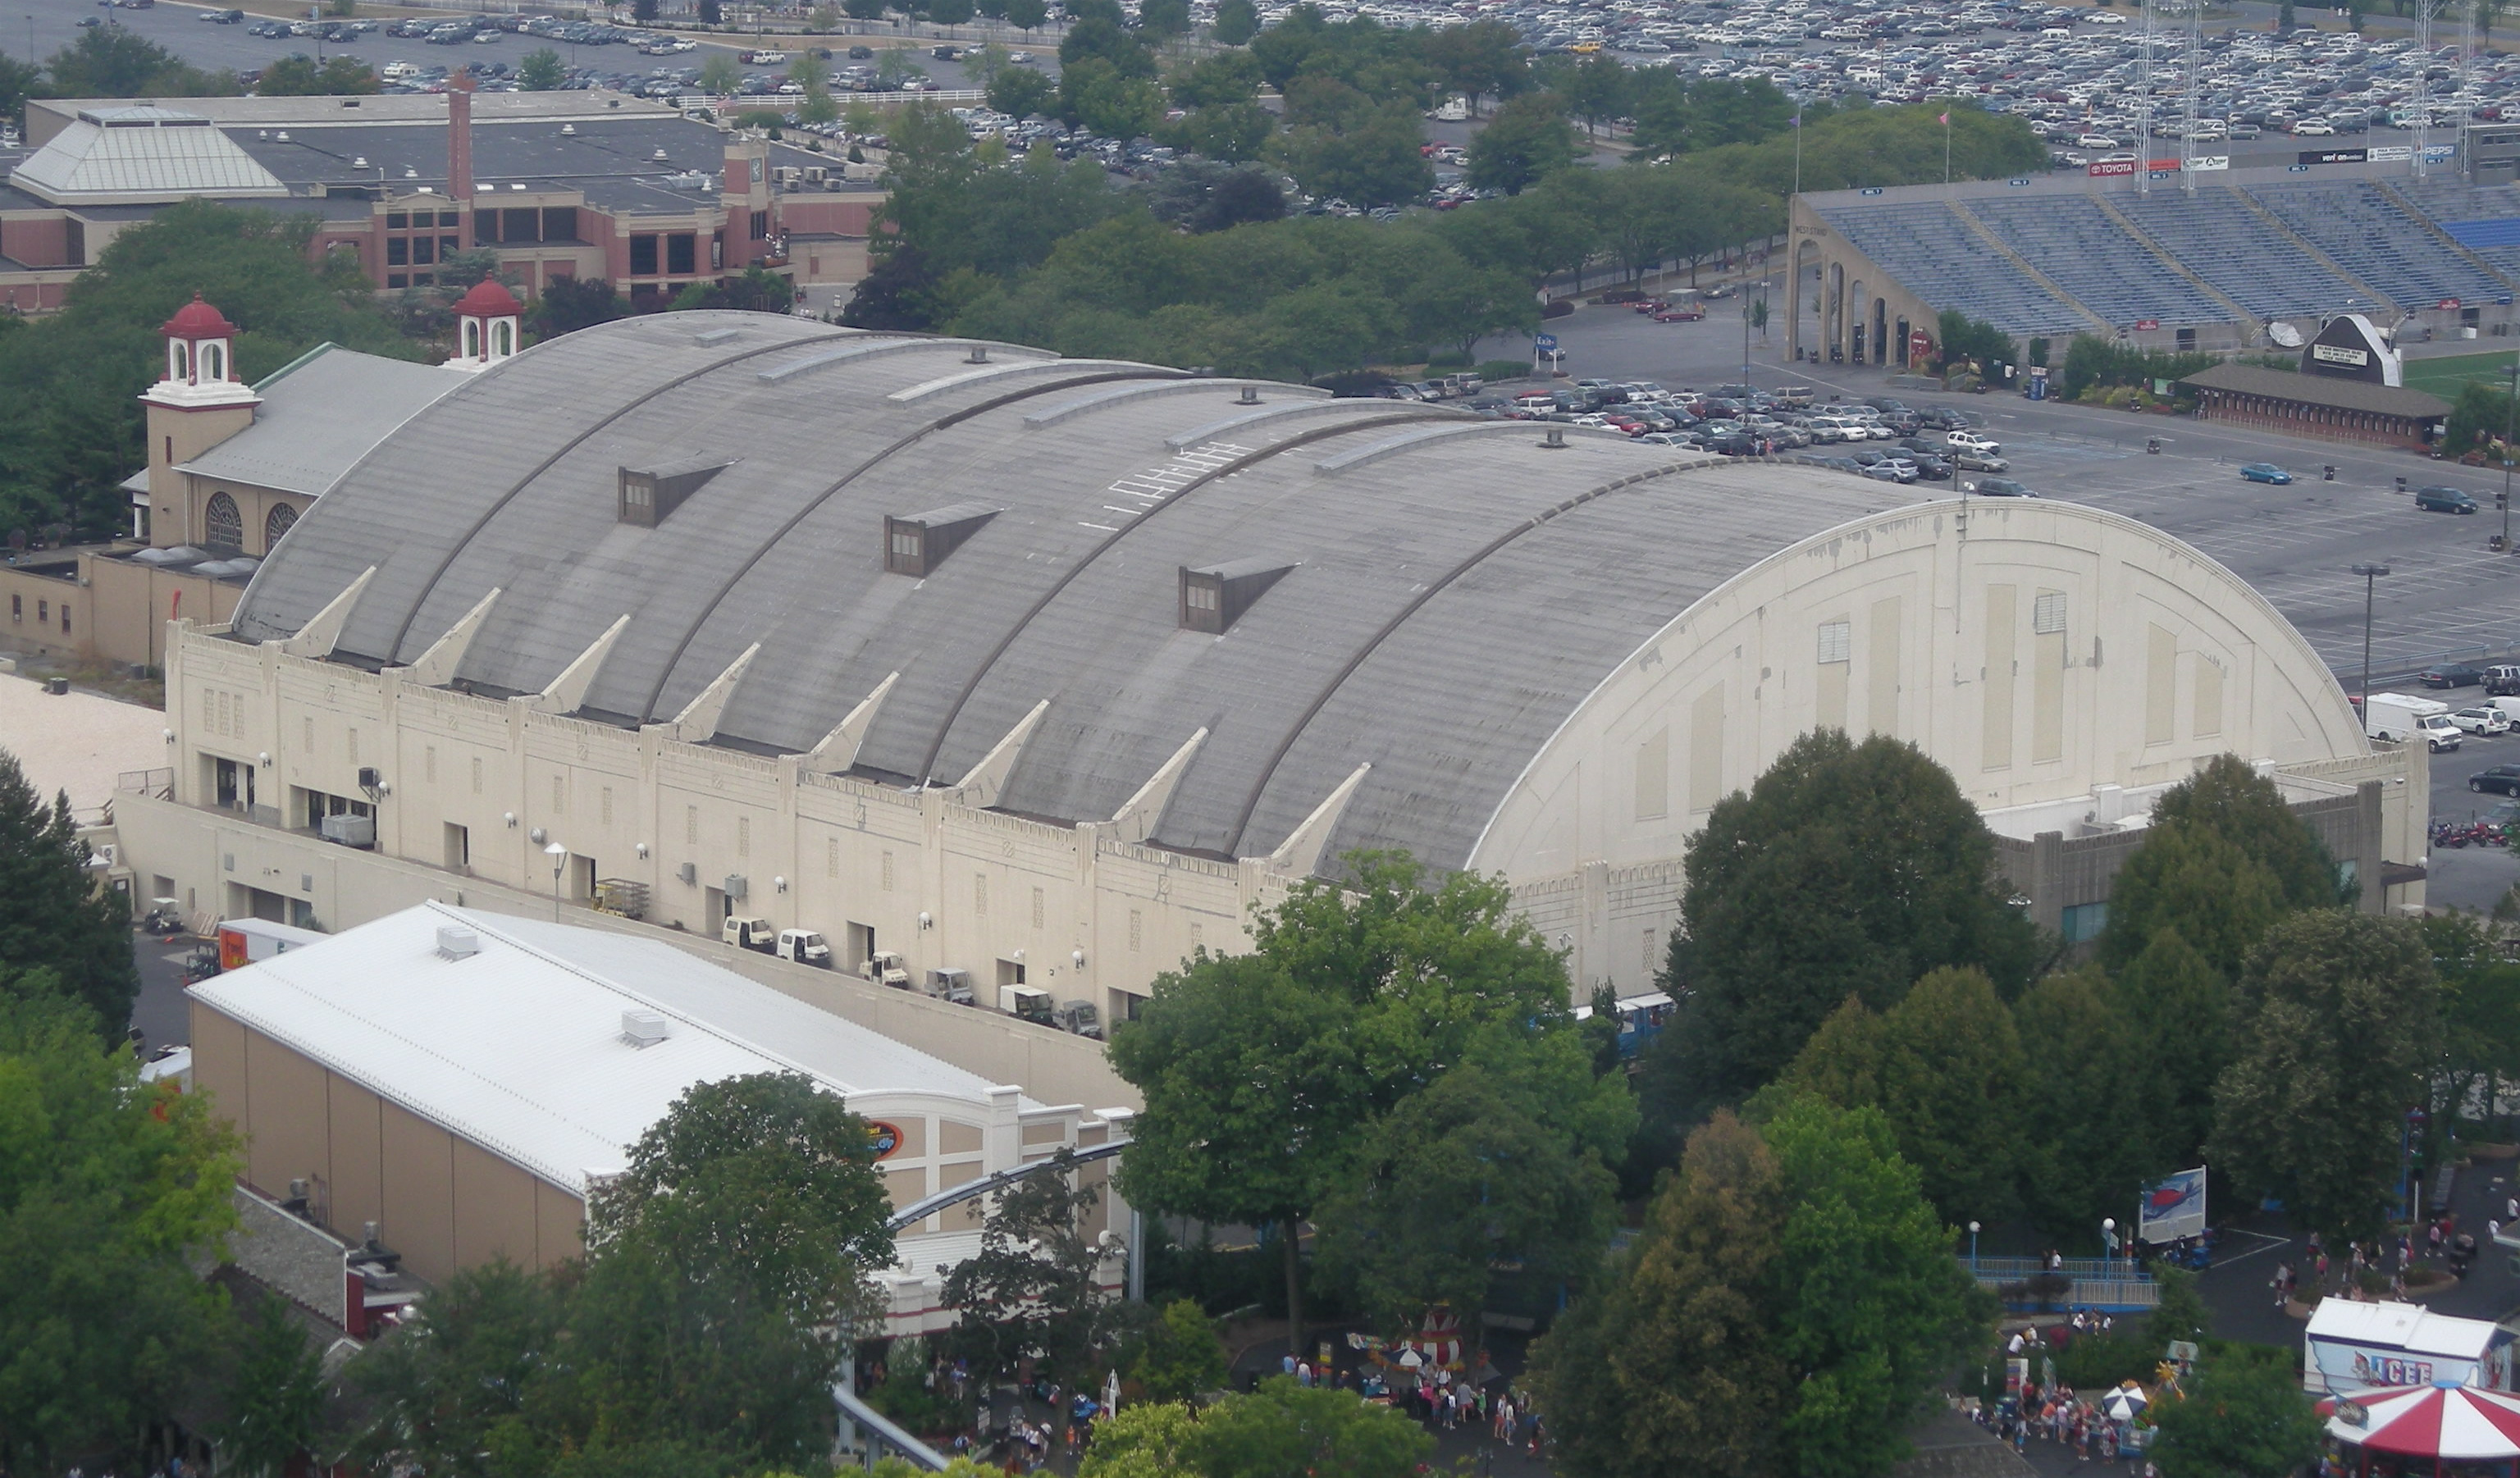 Aerial View of Hershey Arena